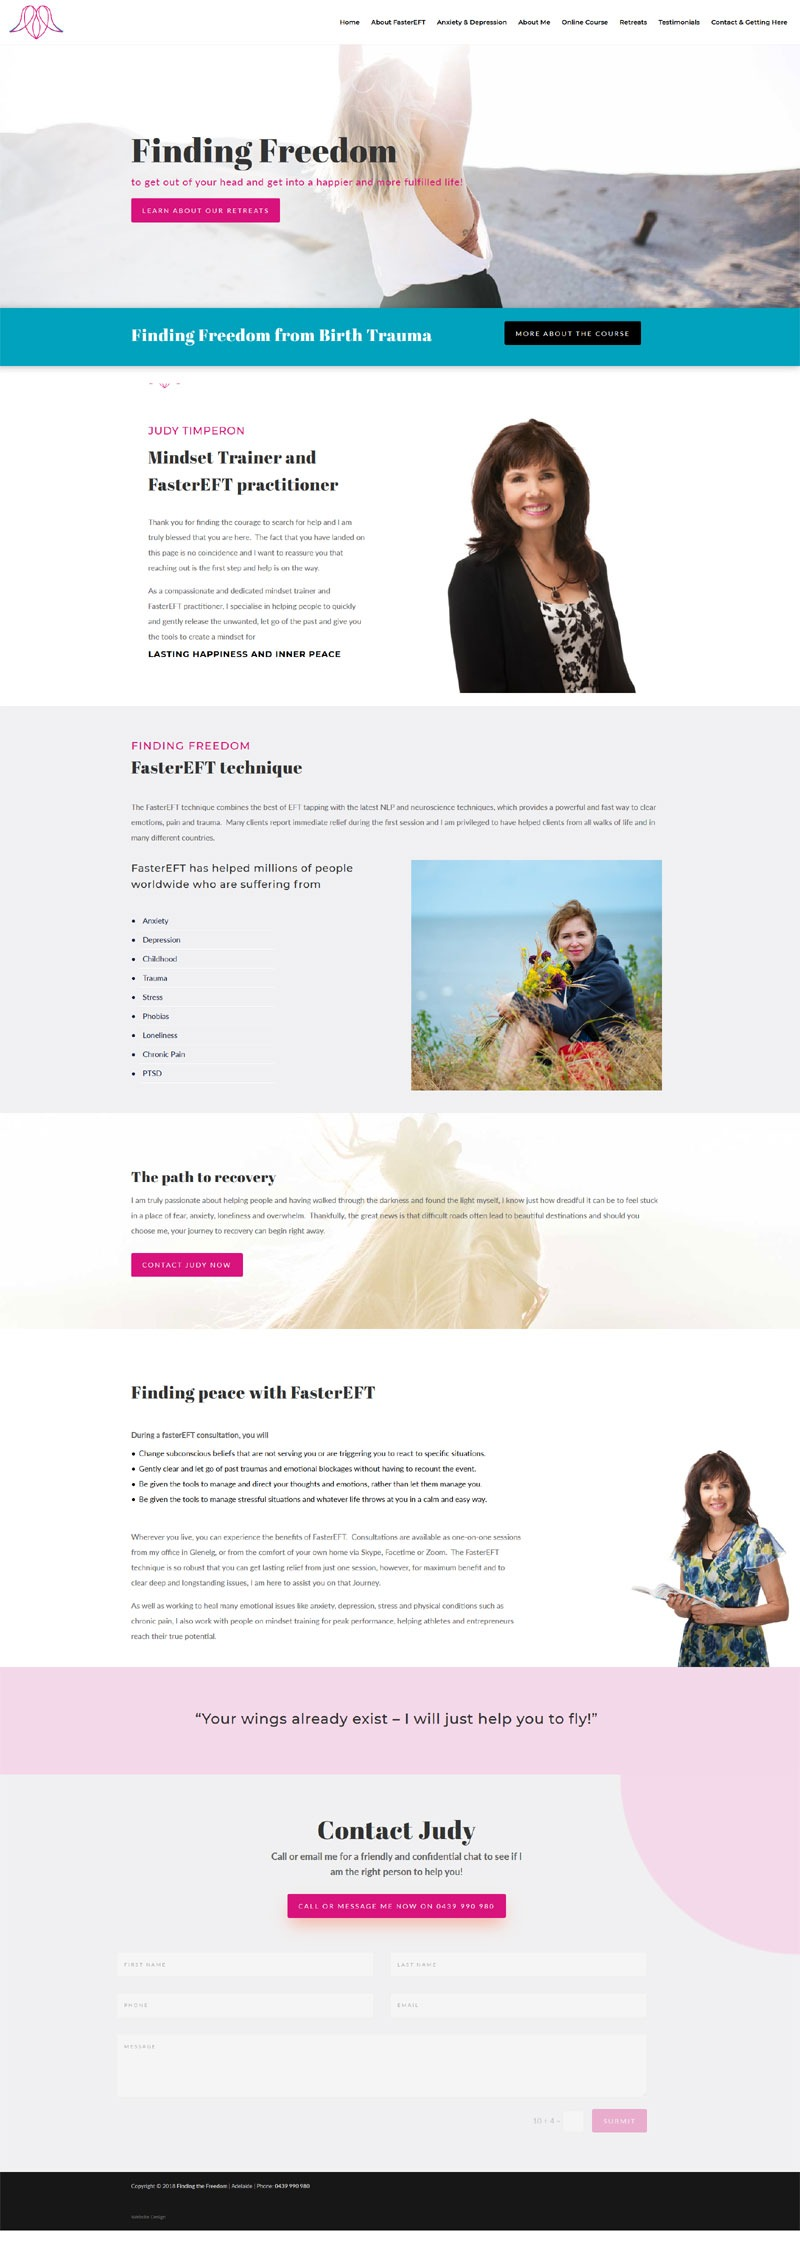 website design adelaide wordpress membership small business coach